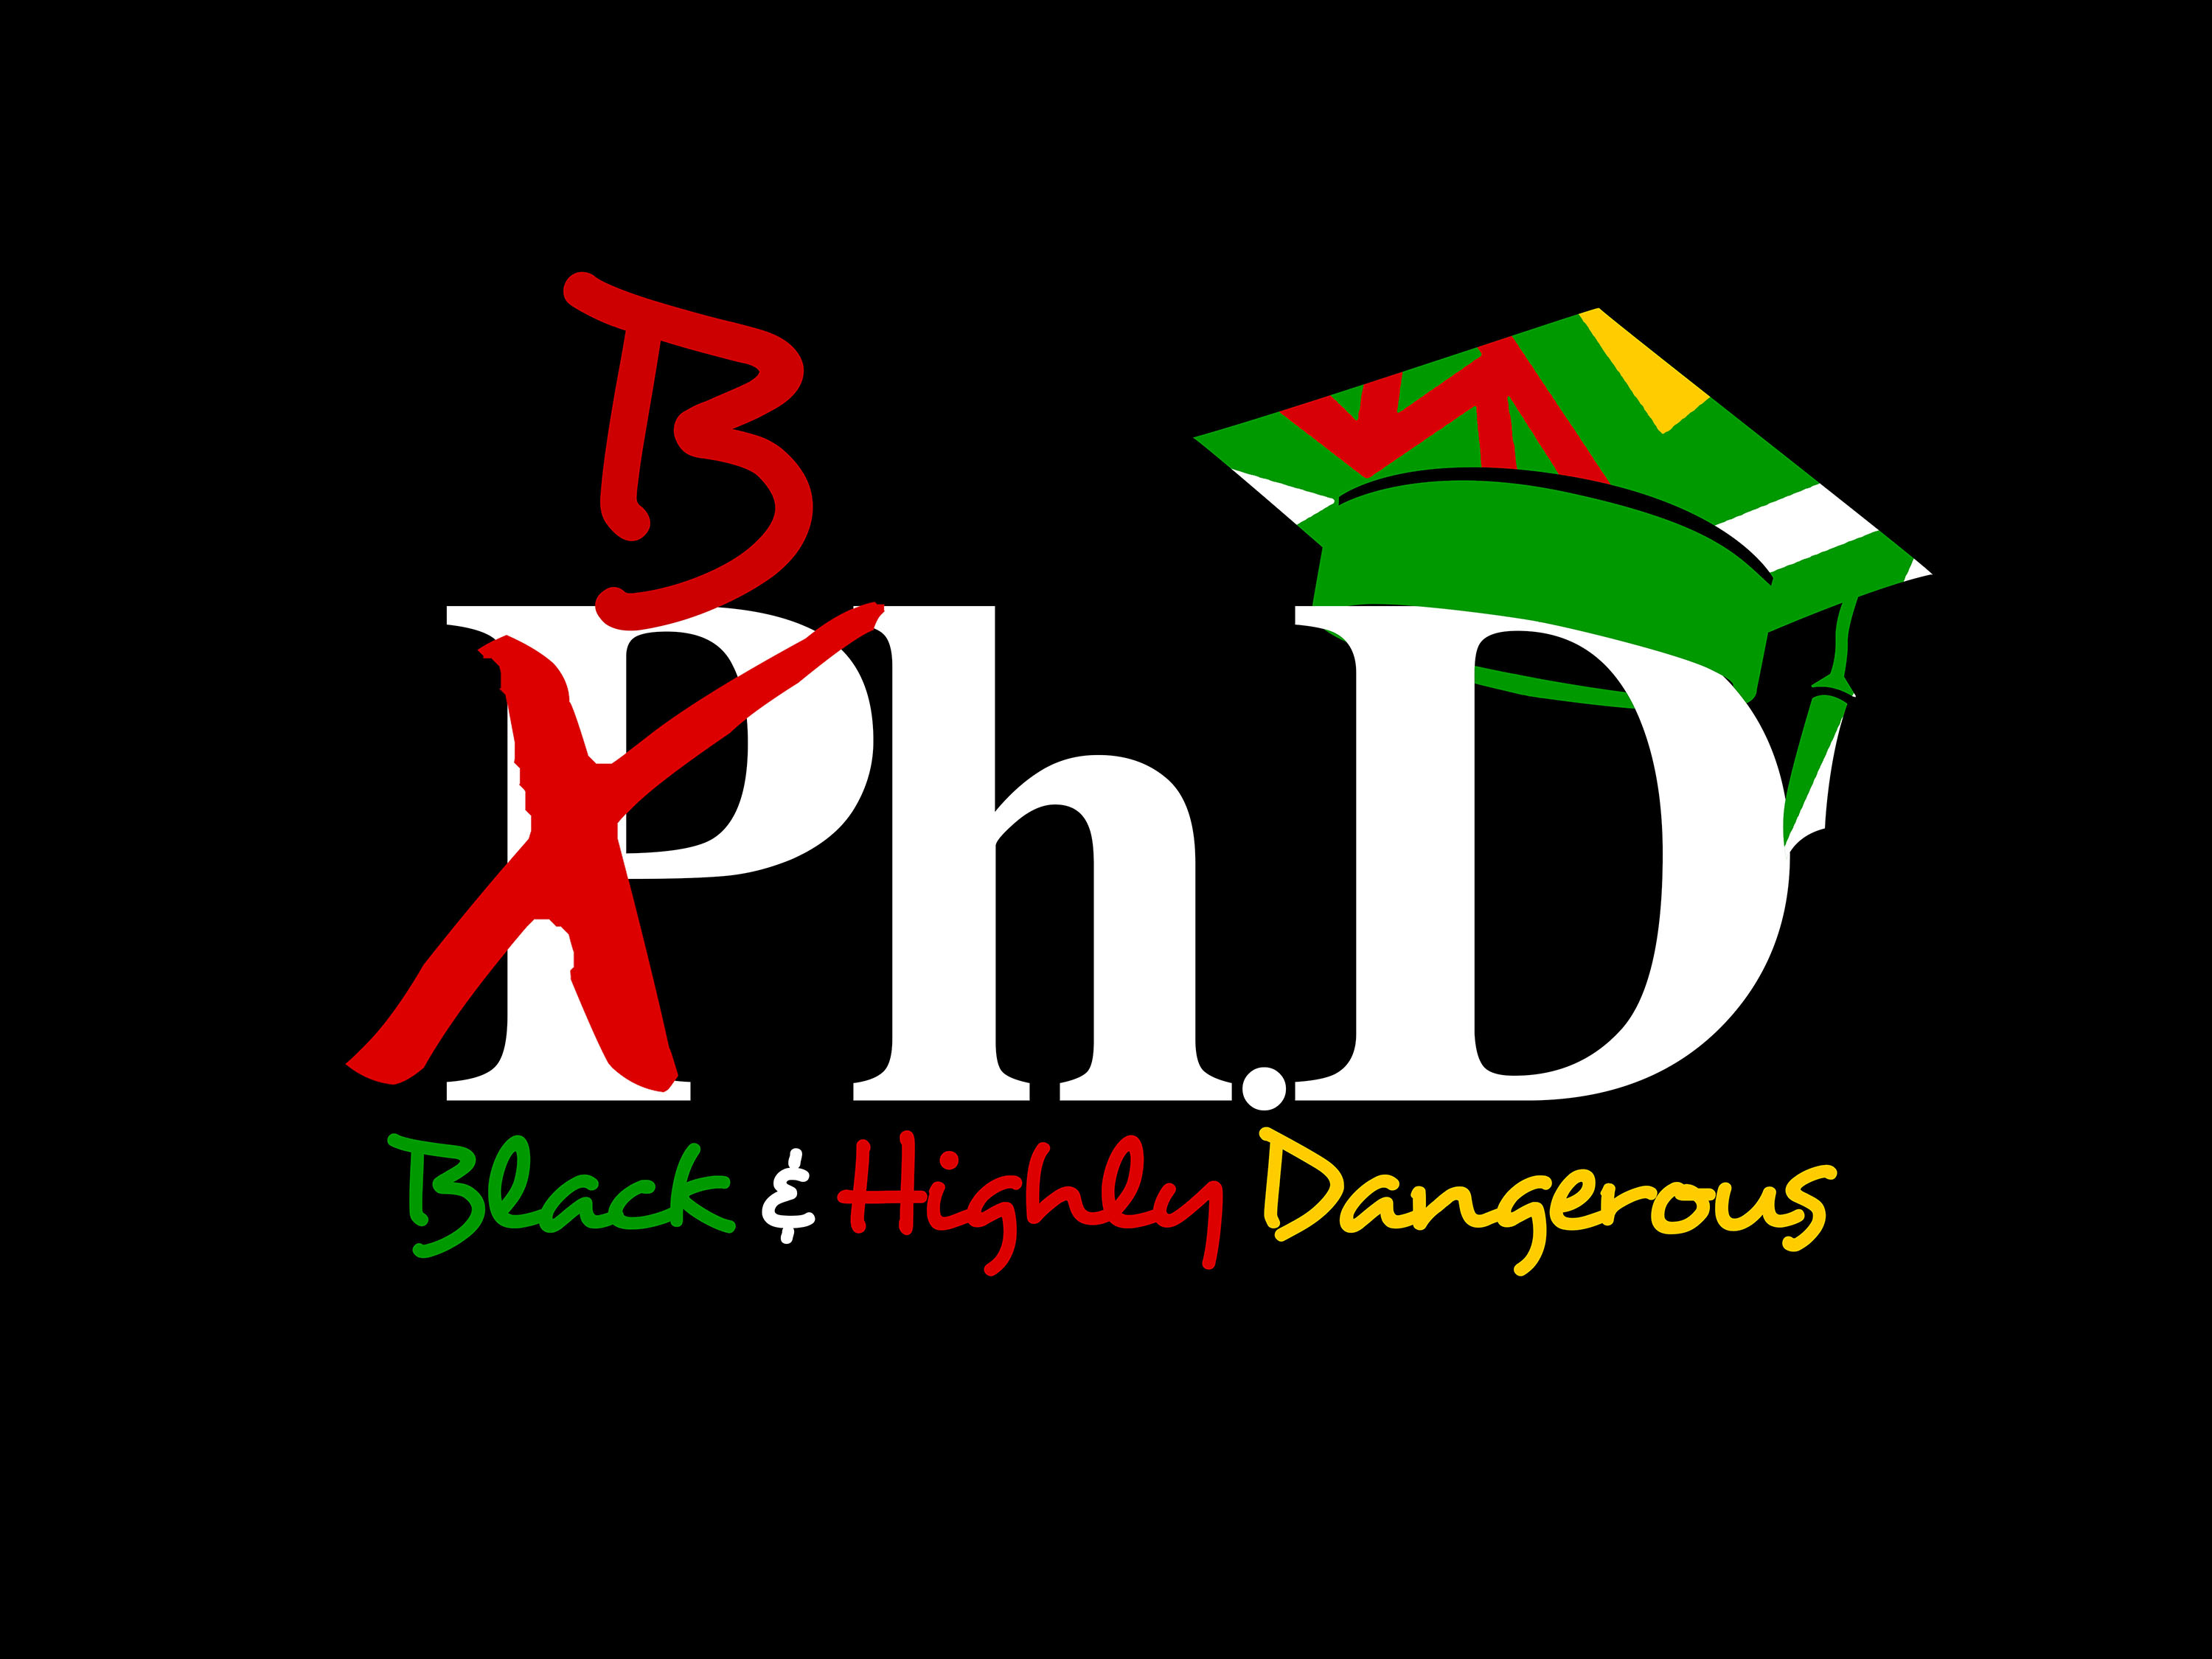 Black and Highly Dangerous